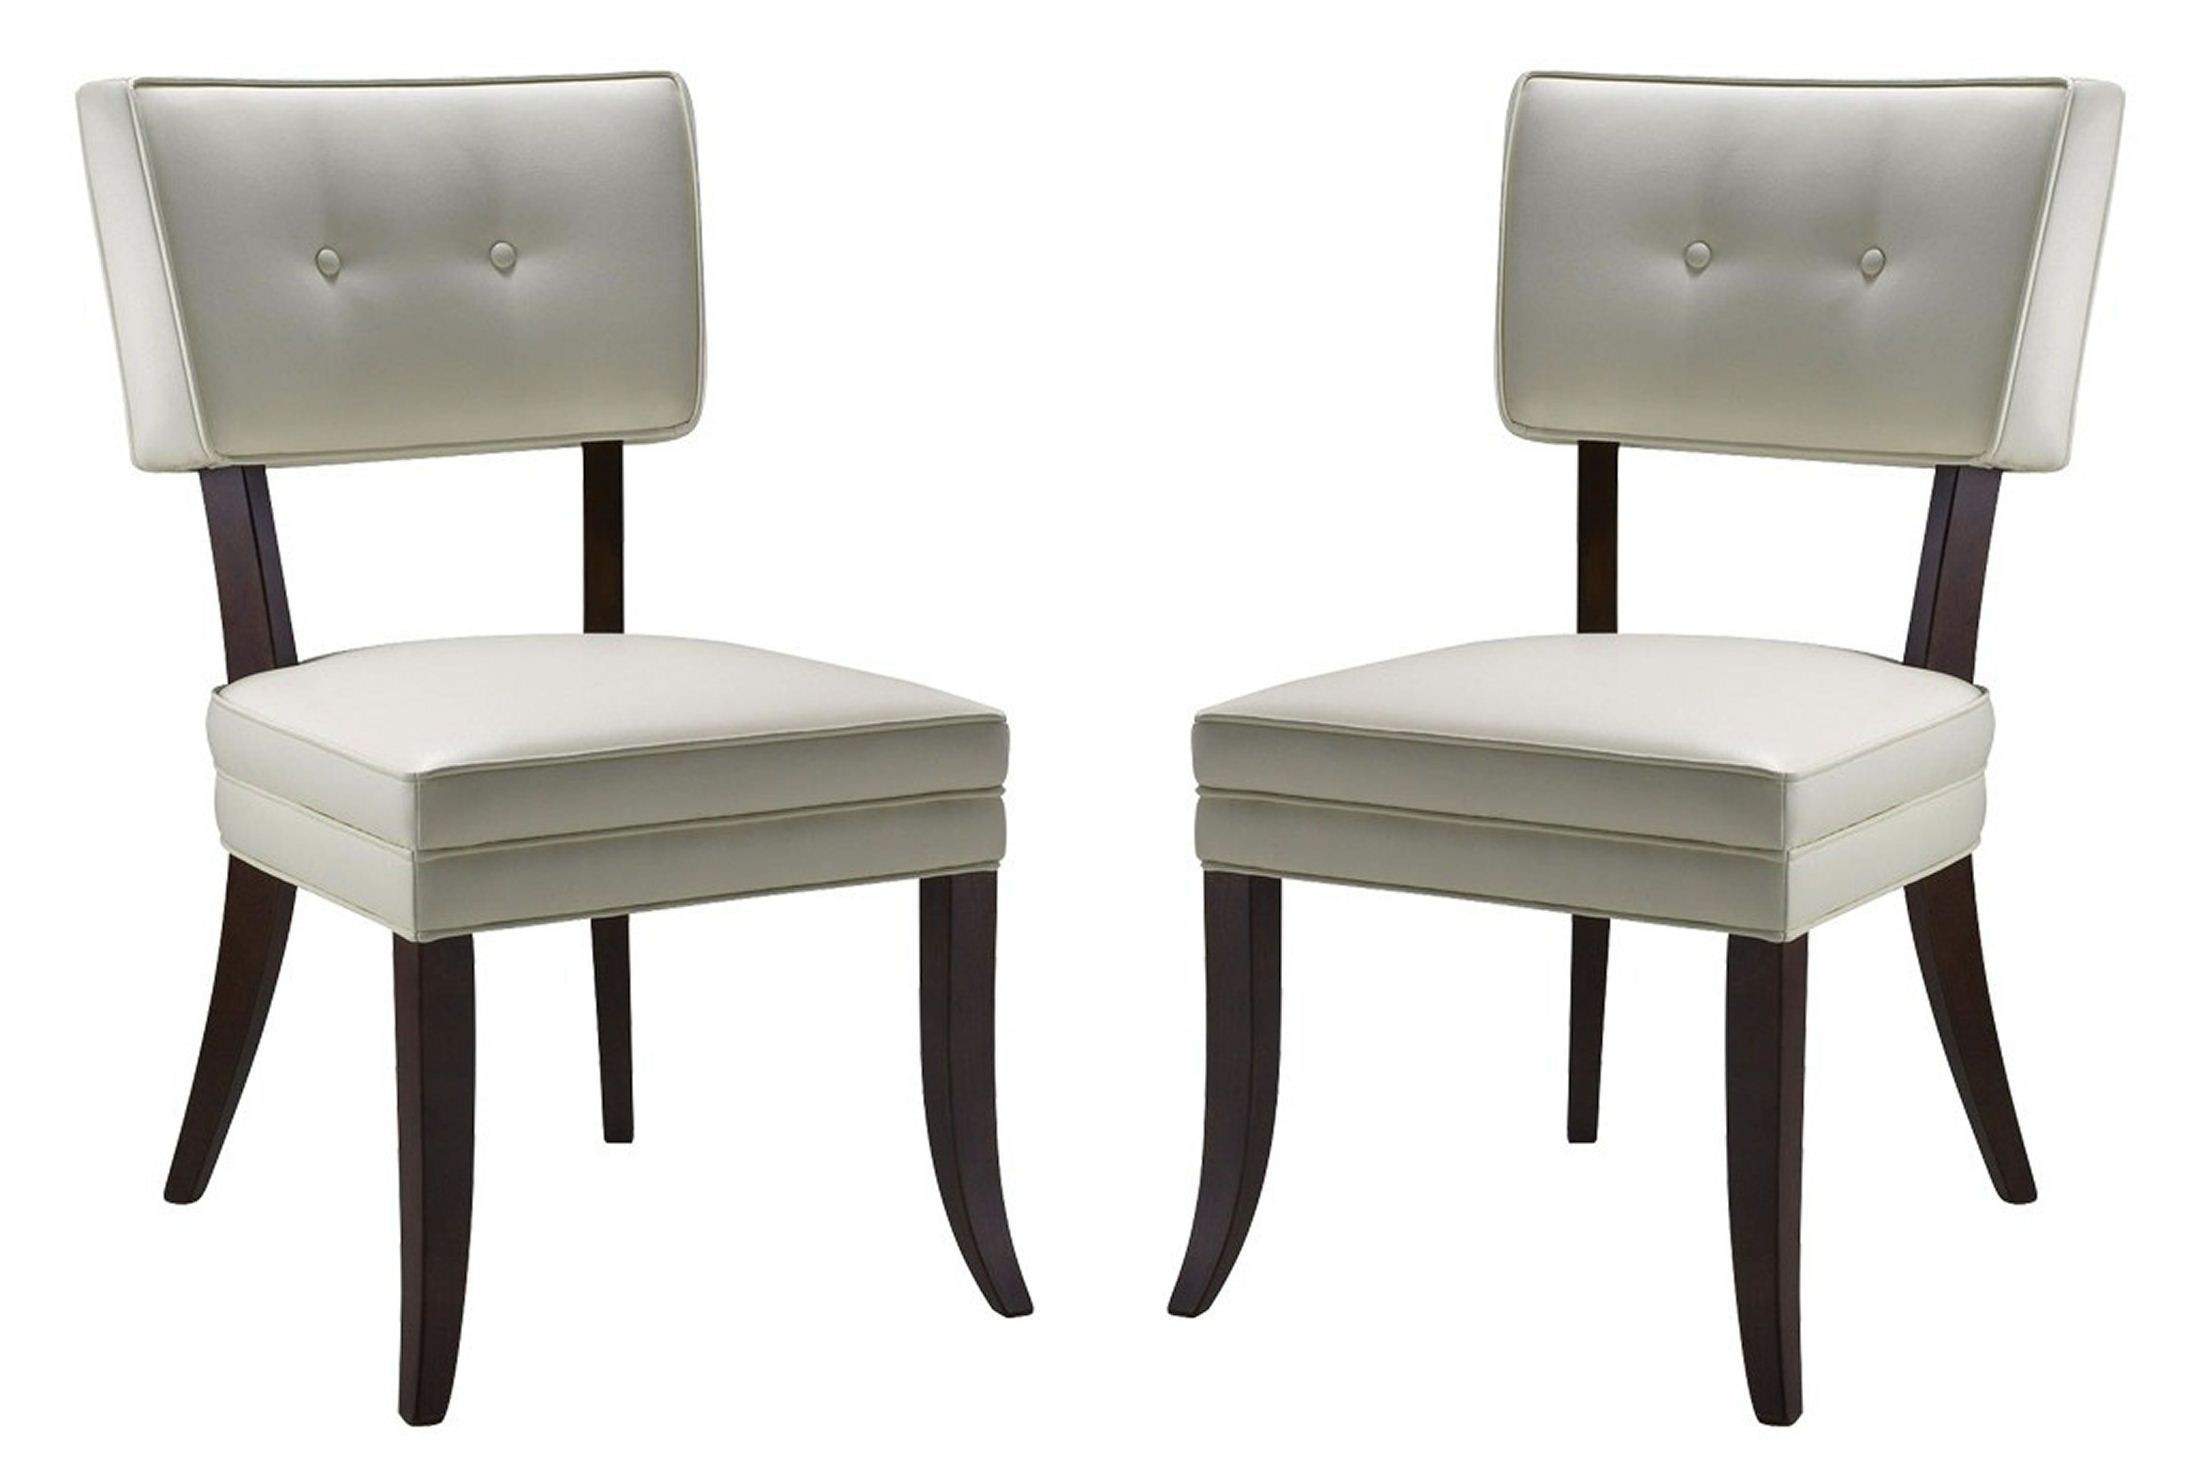 Ivory Dining Chairs Amelia Ivory Dining Chair Set Of 2 From Sunpan 43706